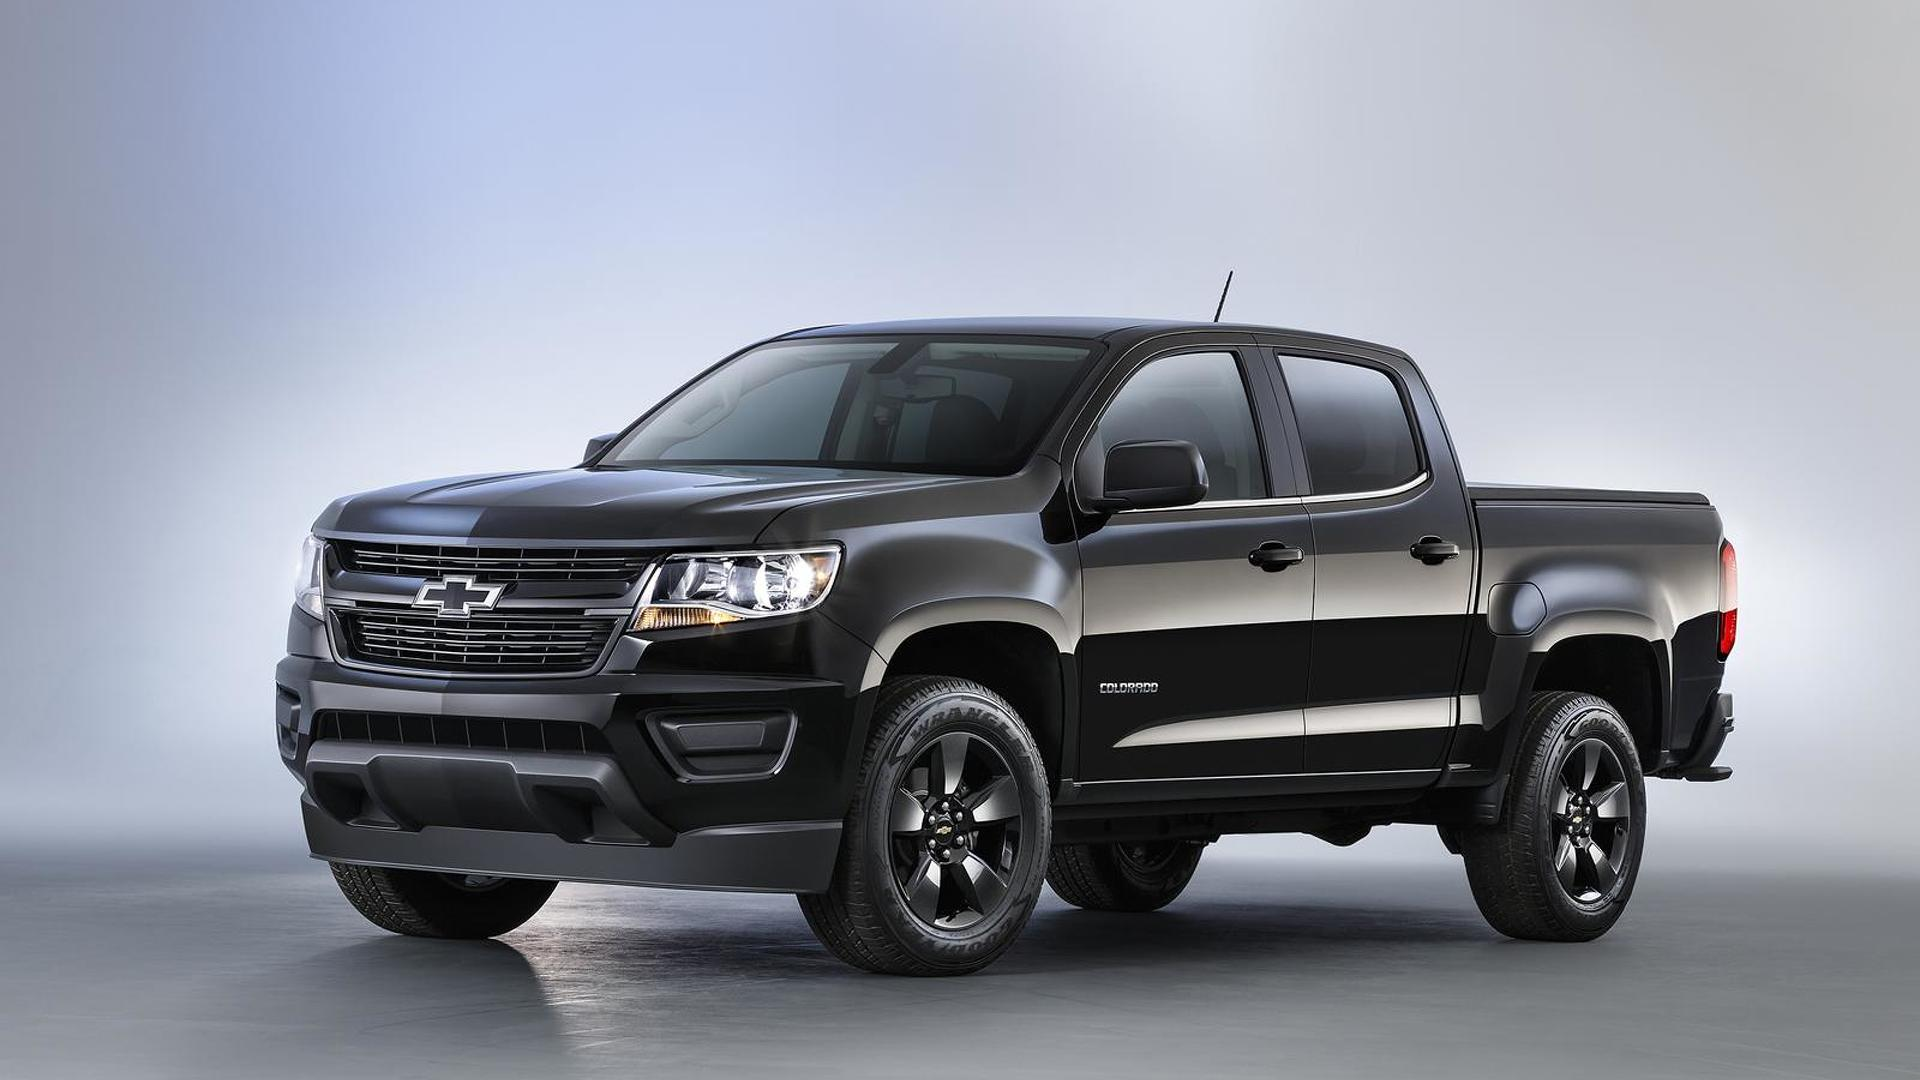 2017 Chevy Colorado Midnight Edition on New 2015 Chevy Colorado